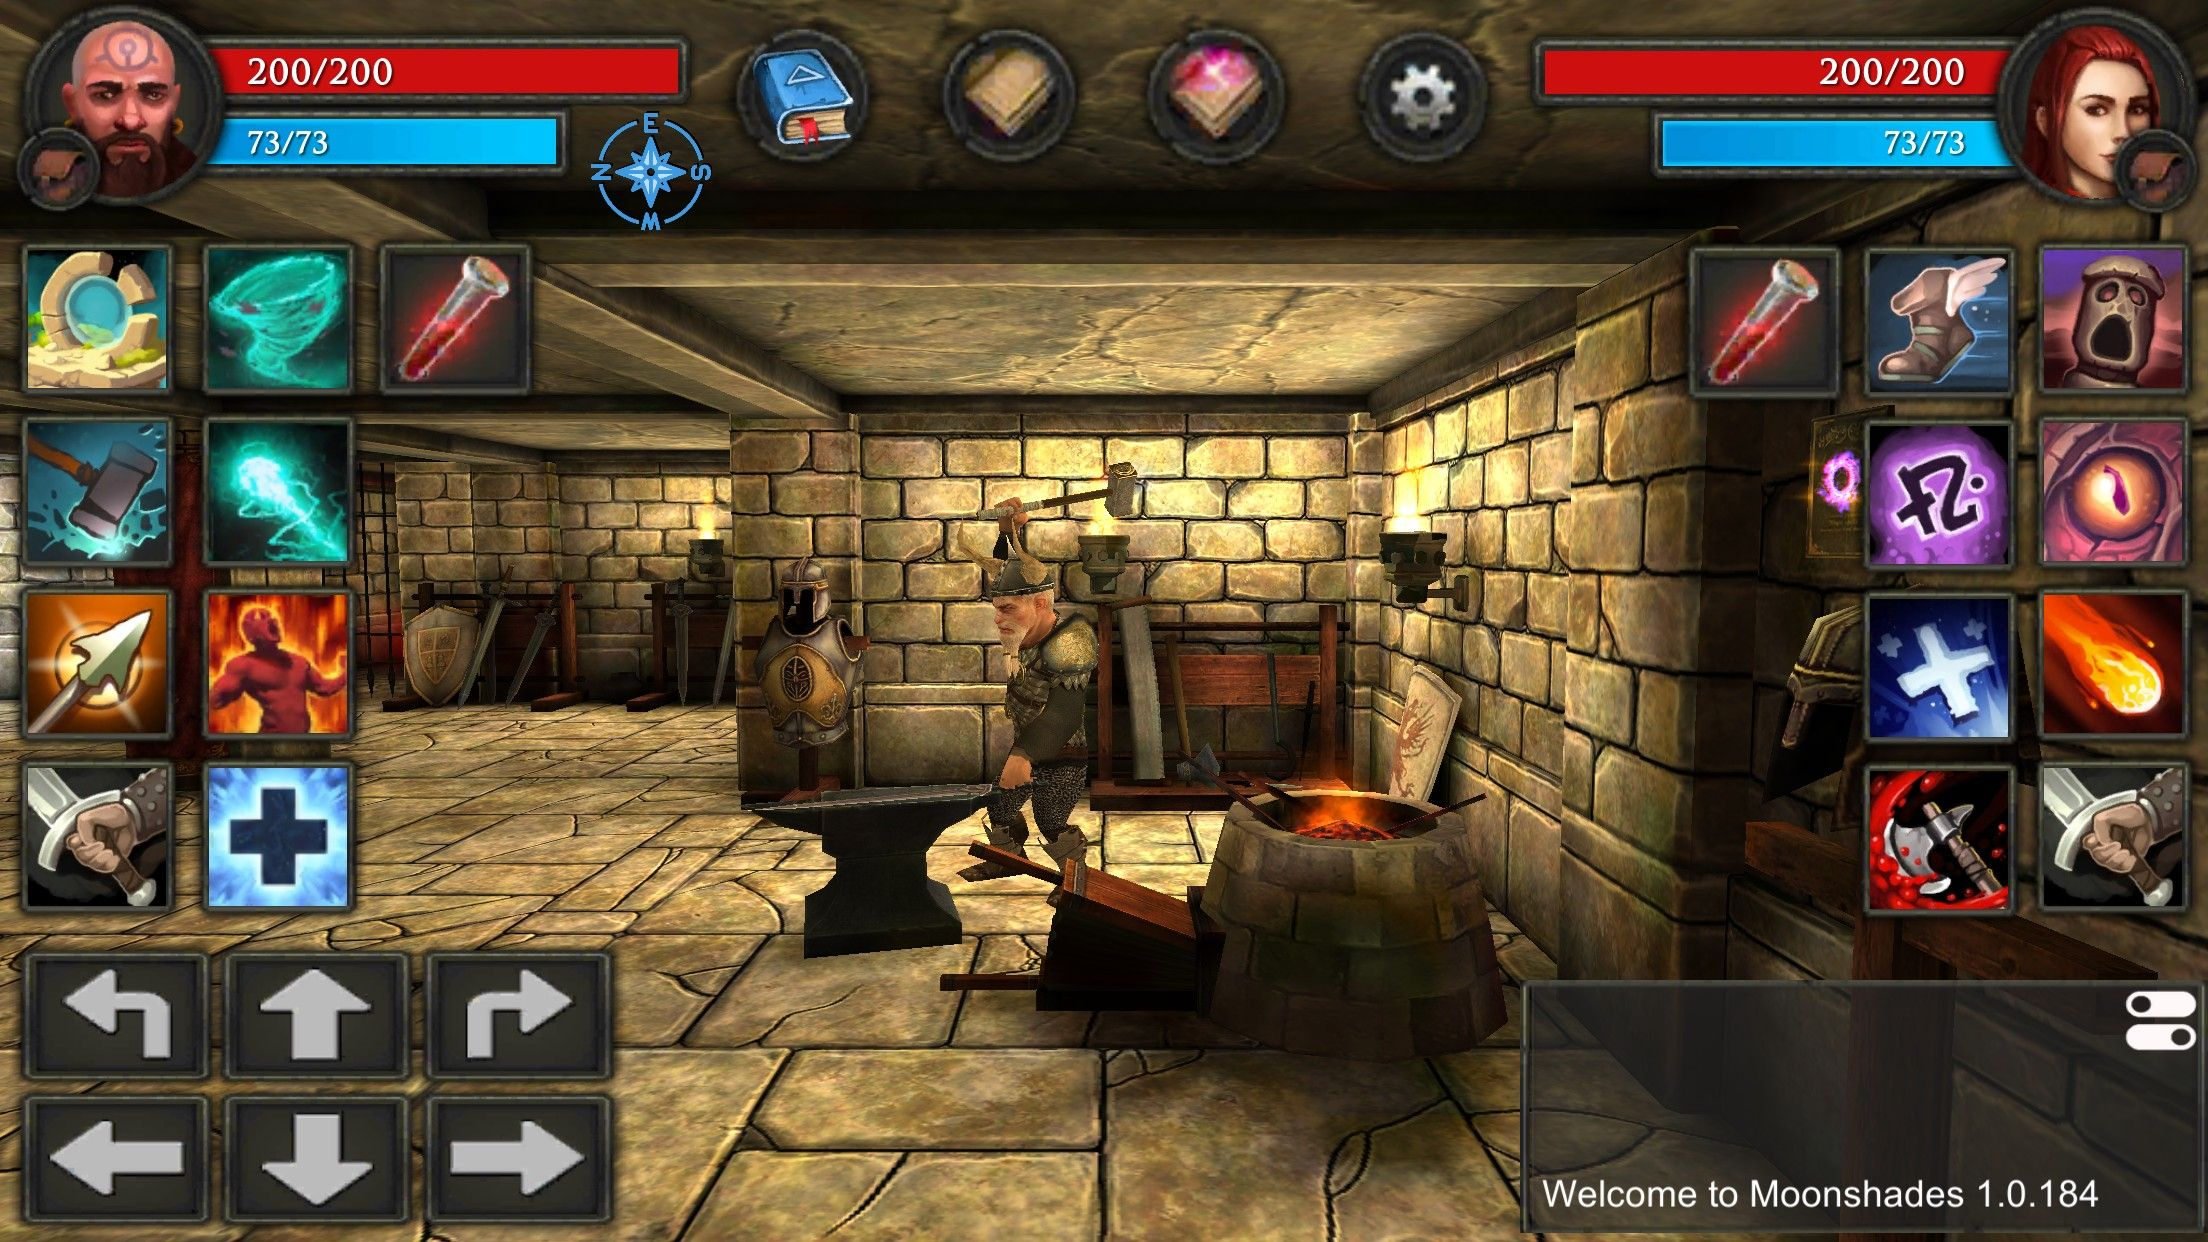 Moonshades an oldschool dungeon crawler roleplaying